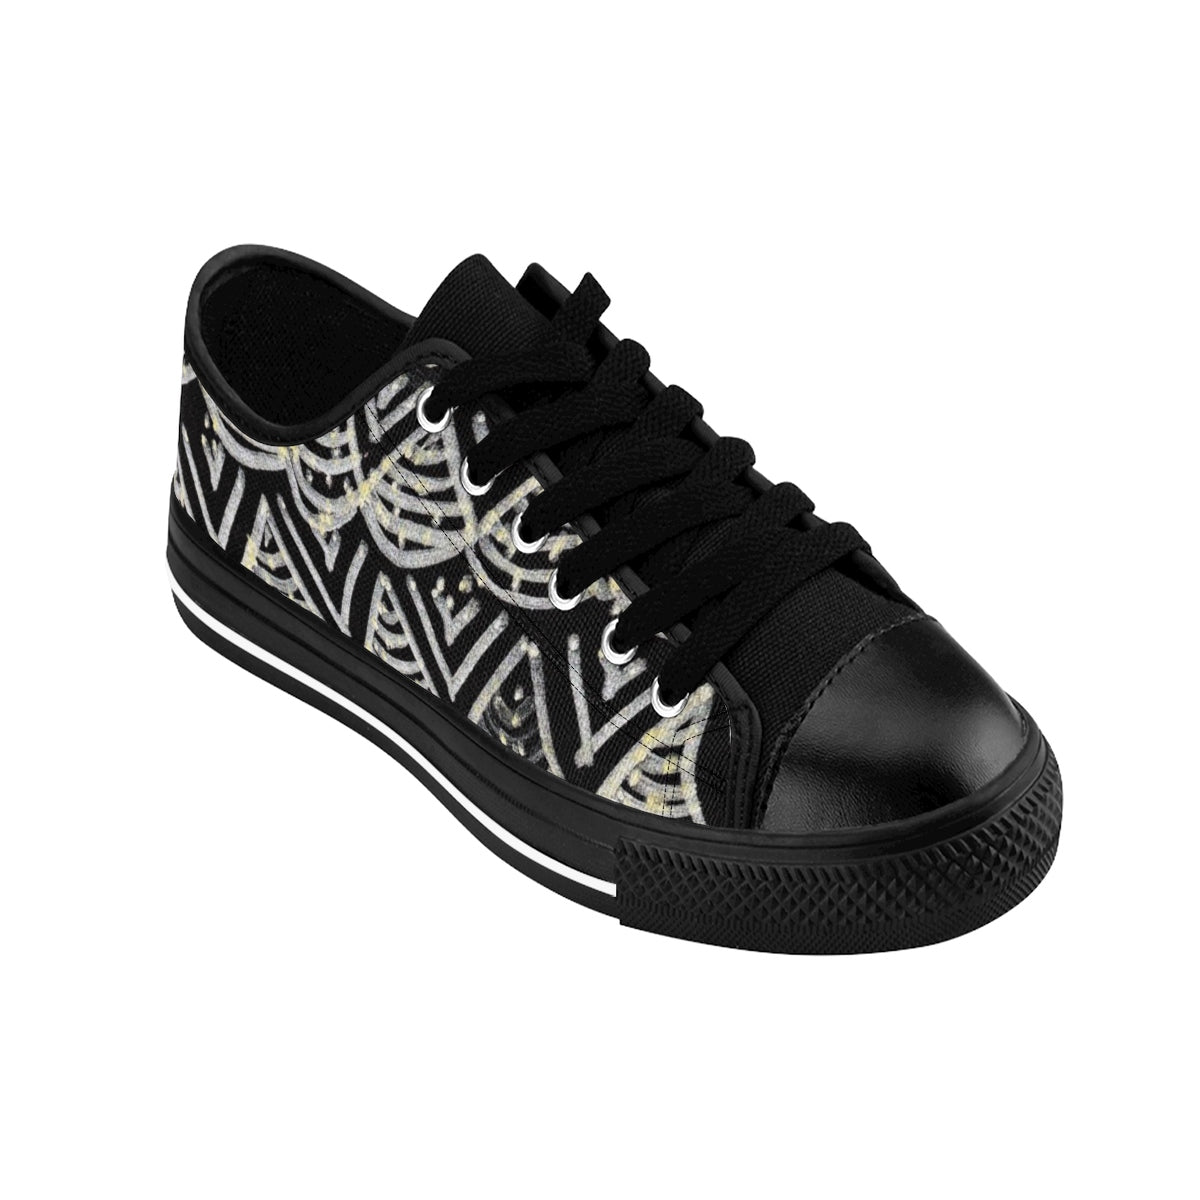 Black Chevron Pattern Mermaid King Men's Low Top Nylon Canvas Tennis Sneakers Shoes-Men's Low Top Sneakers-Black-US 9-Heidi Kimura Art LLC